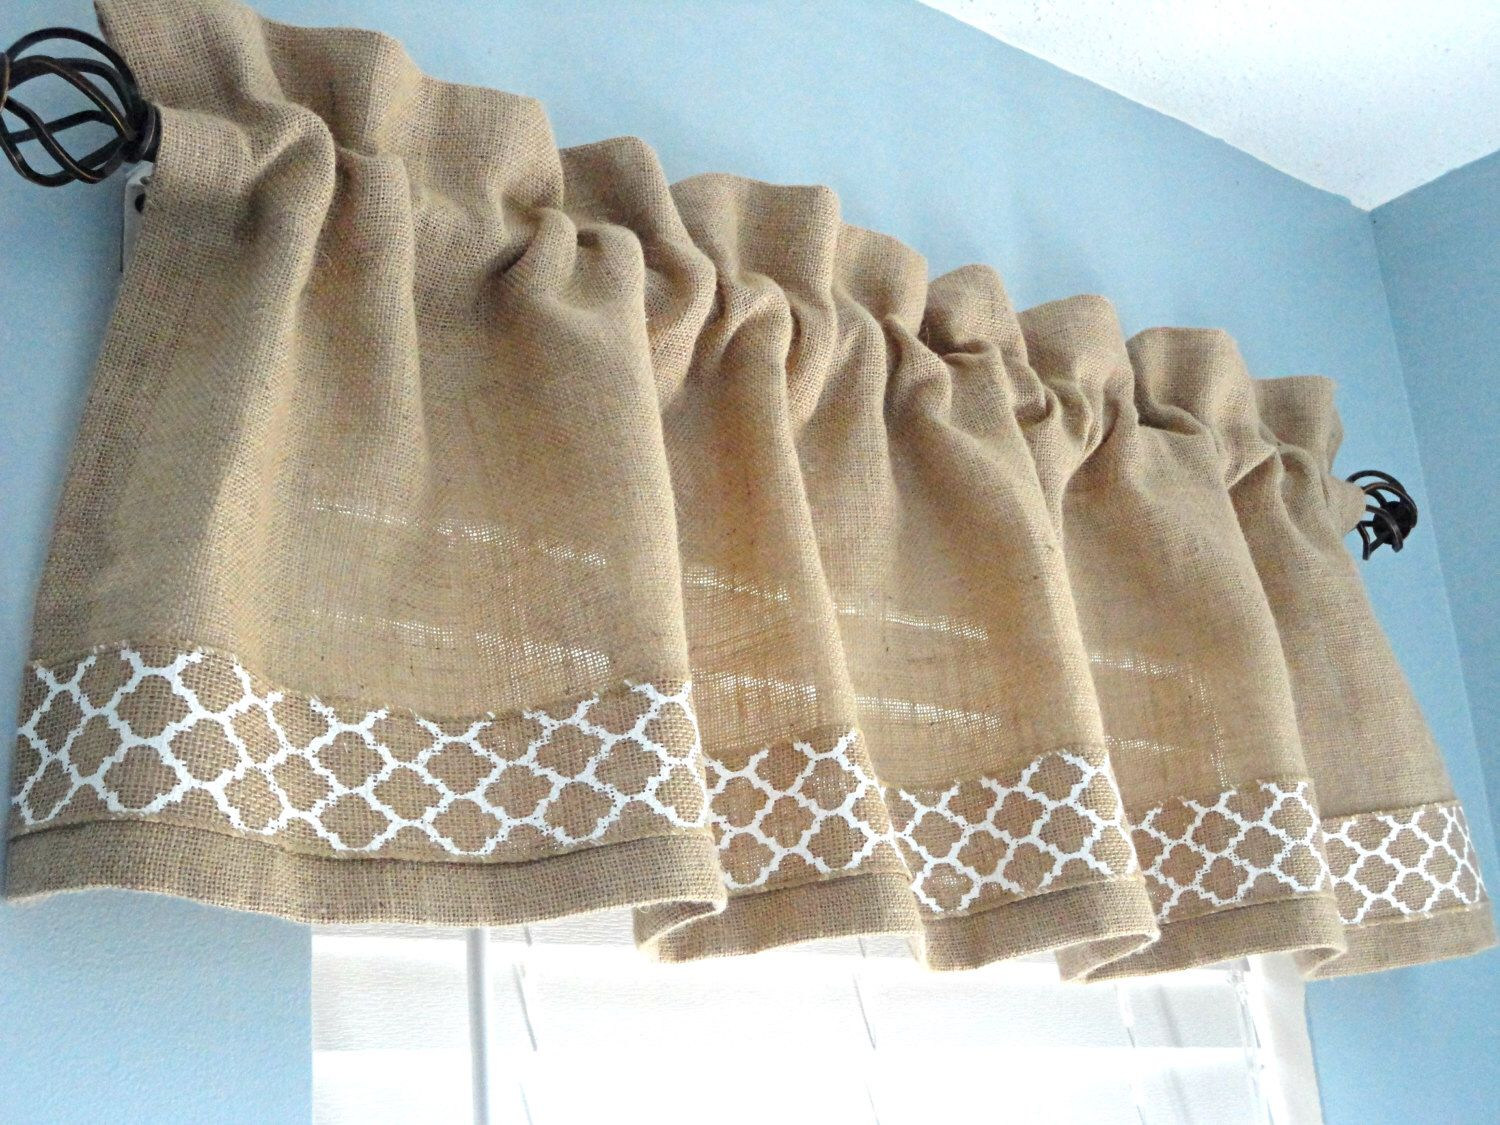 Burlap Valance Window Valance Housewares Window Treatment Kitchen Valance  Rod Pocket Home Decor Curtains Draperies Custom Valance